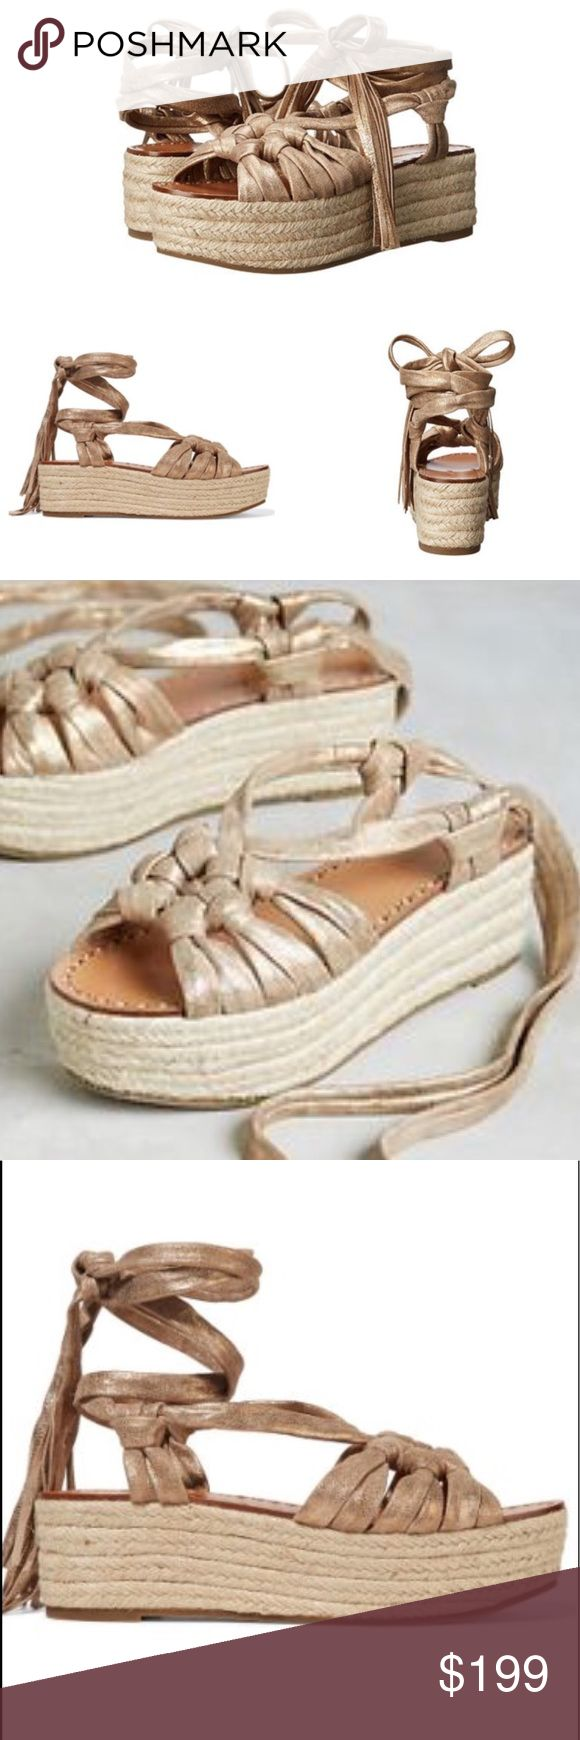 Anthropologie Sigerson Morrison Gold Espadrilles So Chic! Sigerson Morrison summer sandals! Perfectly paired with jeans or dressed up with your favorite Lace Sundress Size 10. New in box never worn Anthropologie Shoes Espadrilles